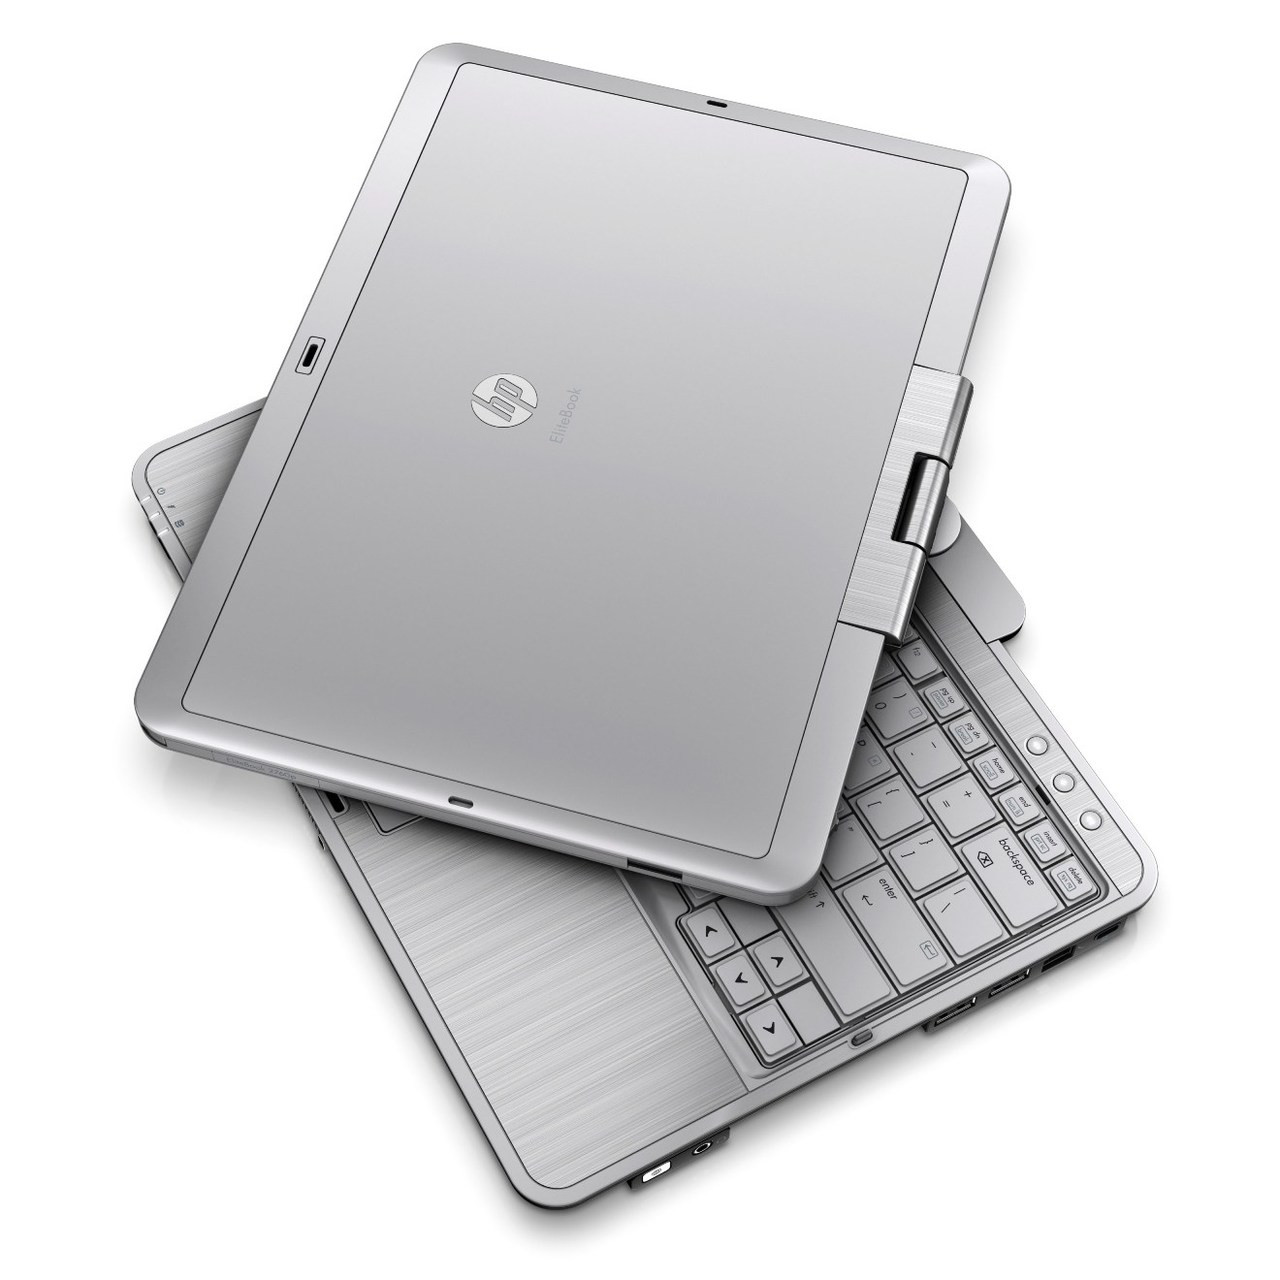 Hp Elitebook 2760P Tablet PC Intel Core i5-2540M (Configure to Order) - top back view